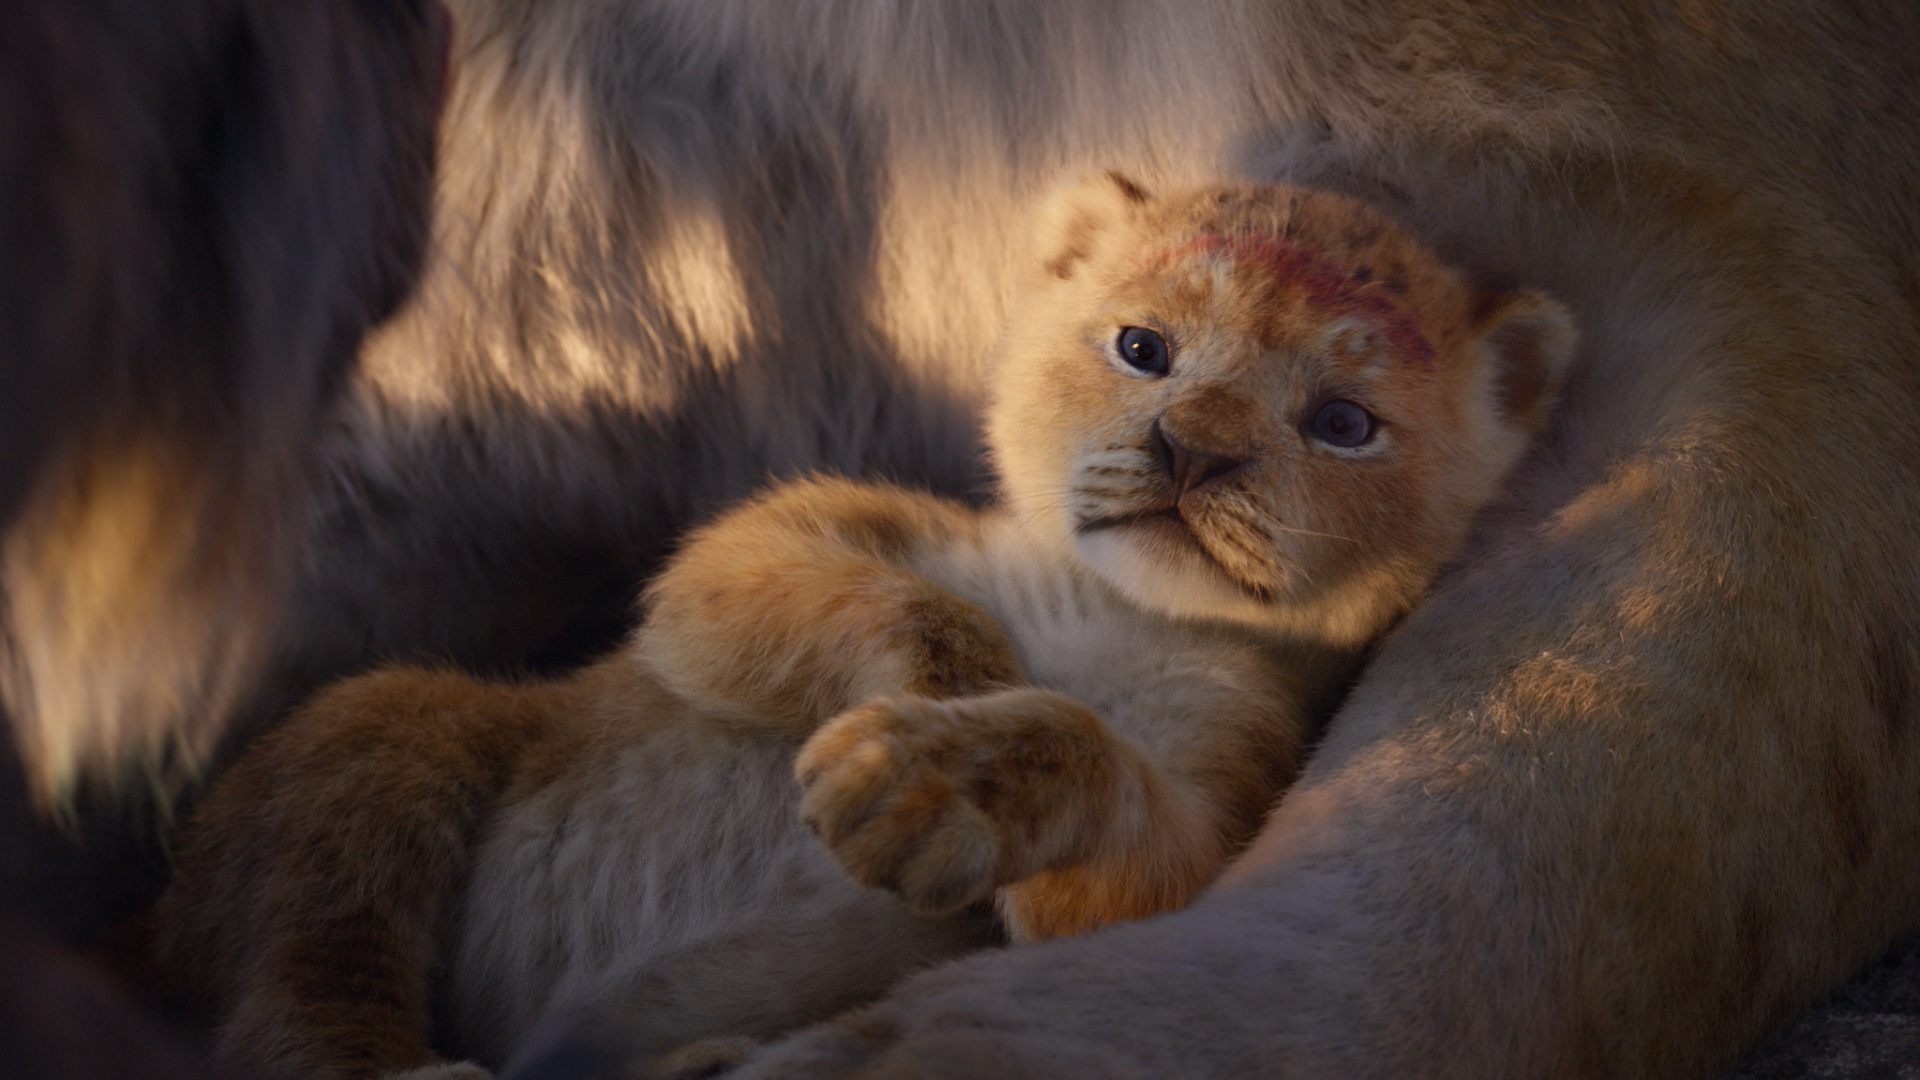 The Lion King 2019 Announce Trailer